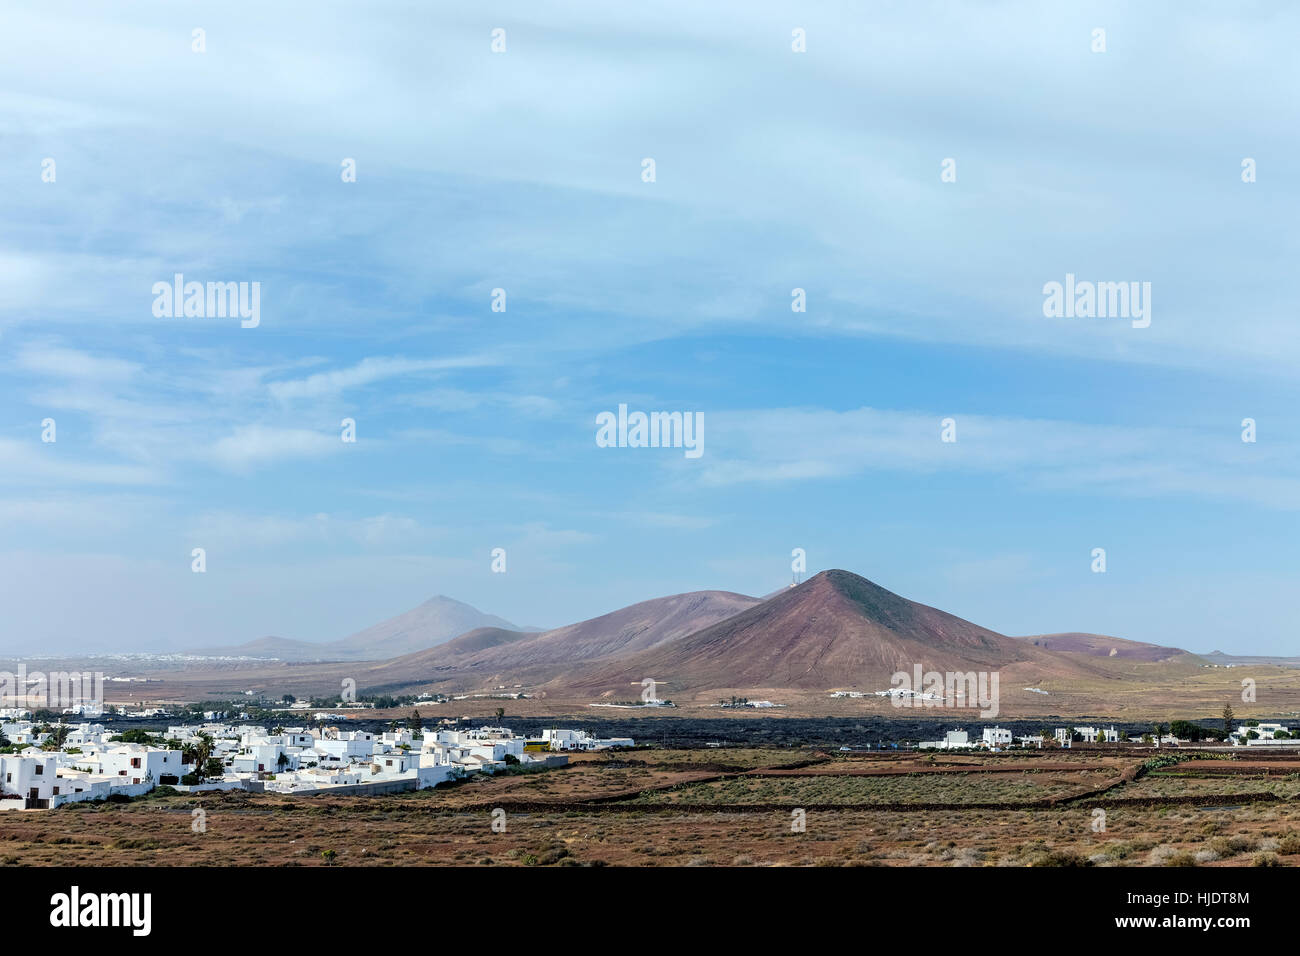 Volcan de Tahiche, Teguise, Lanzarote, Canary Islands, Spain - Stock Image